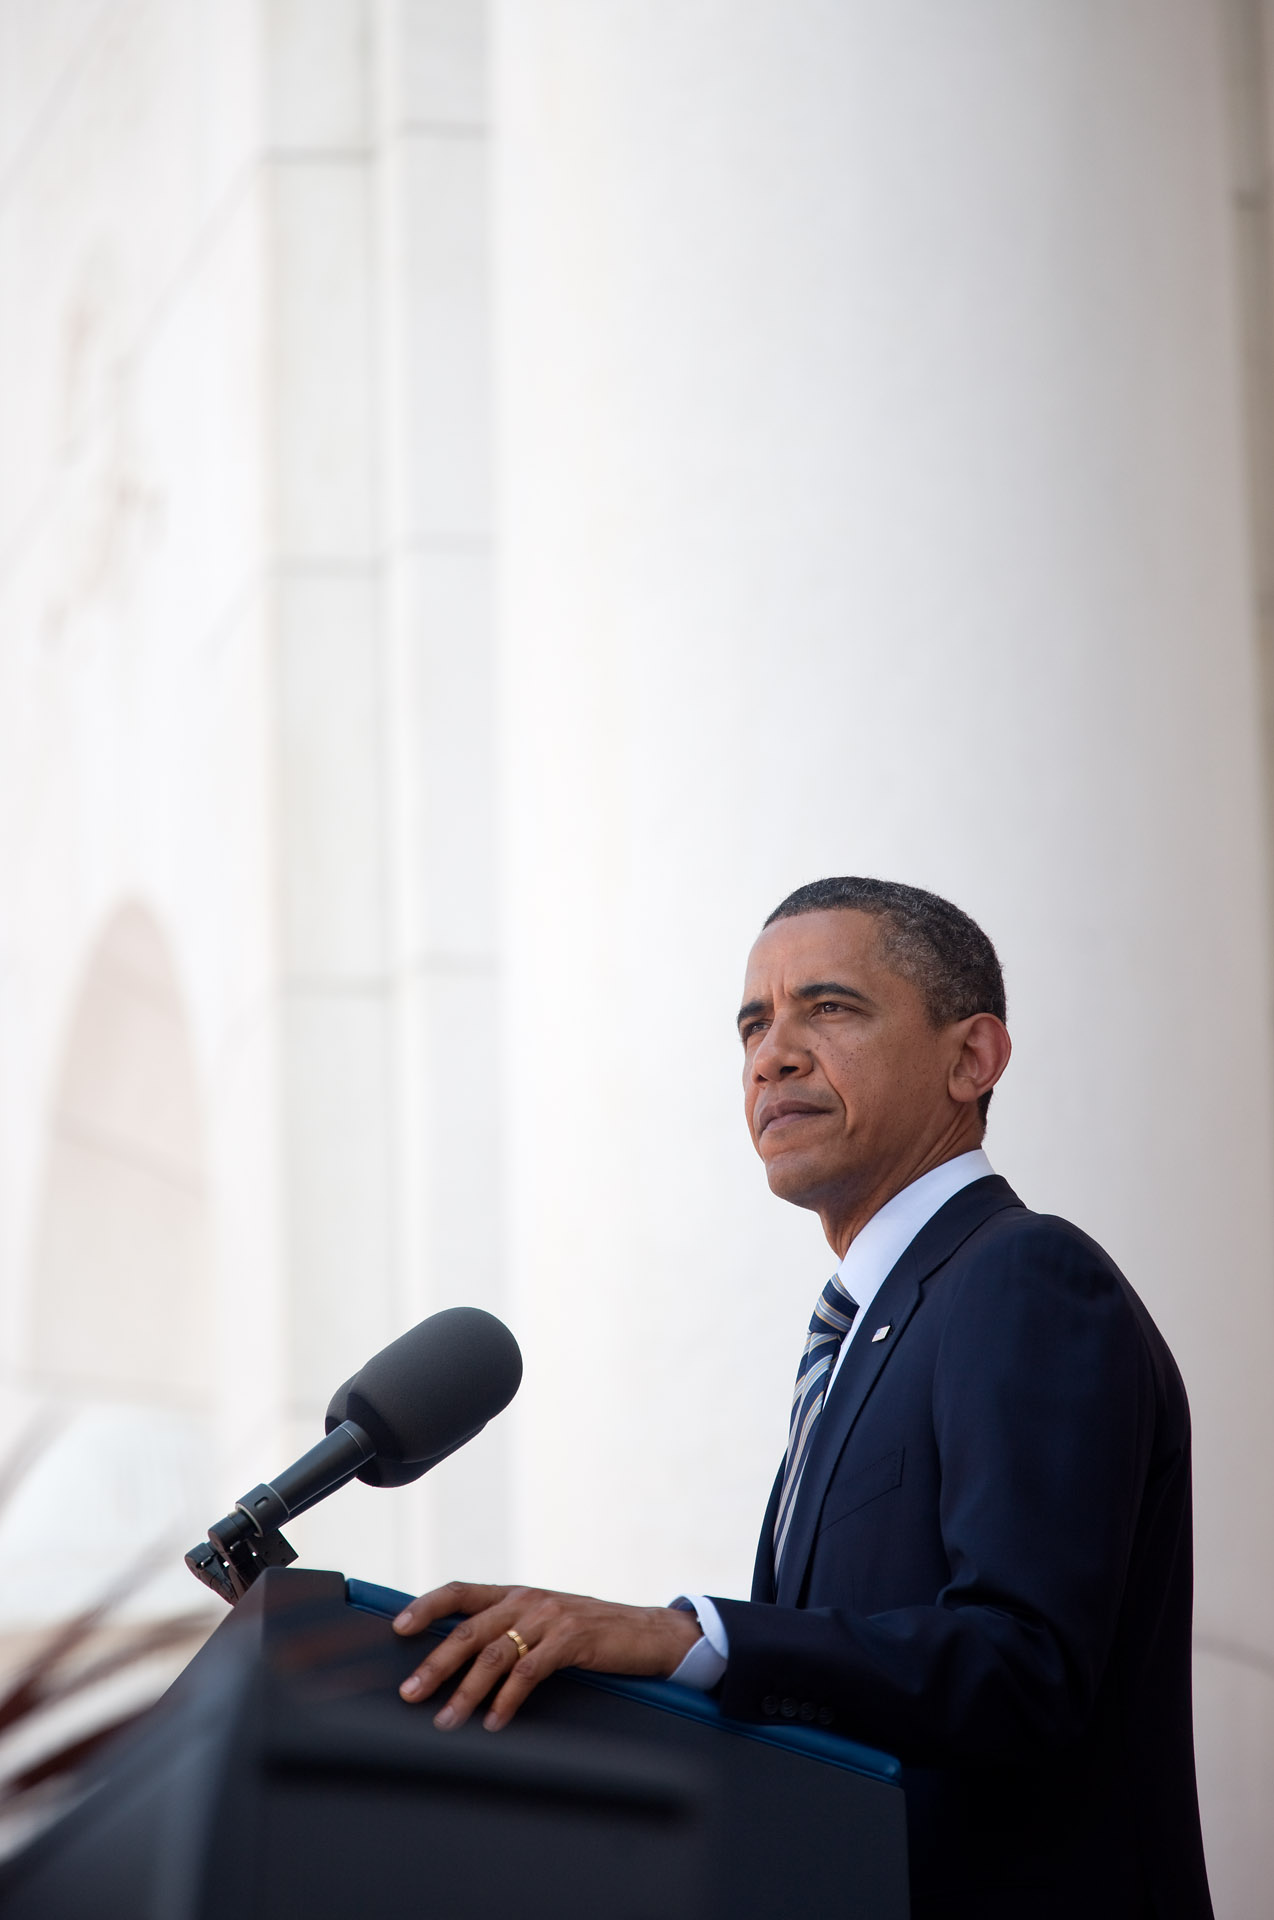 President Barack Obama Delivers Memorial Day Remarks at Arlington National Cemetery